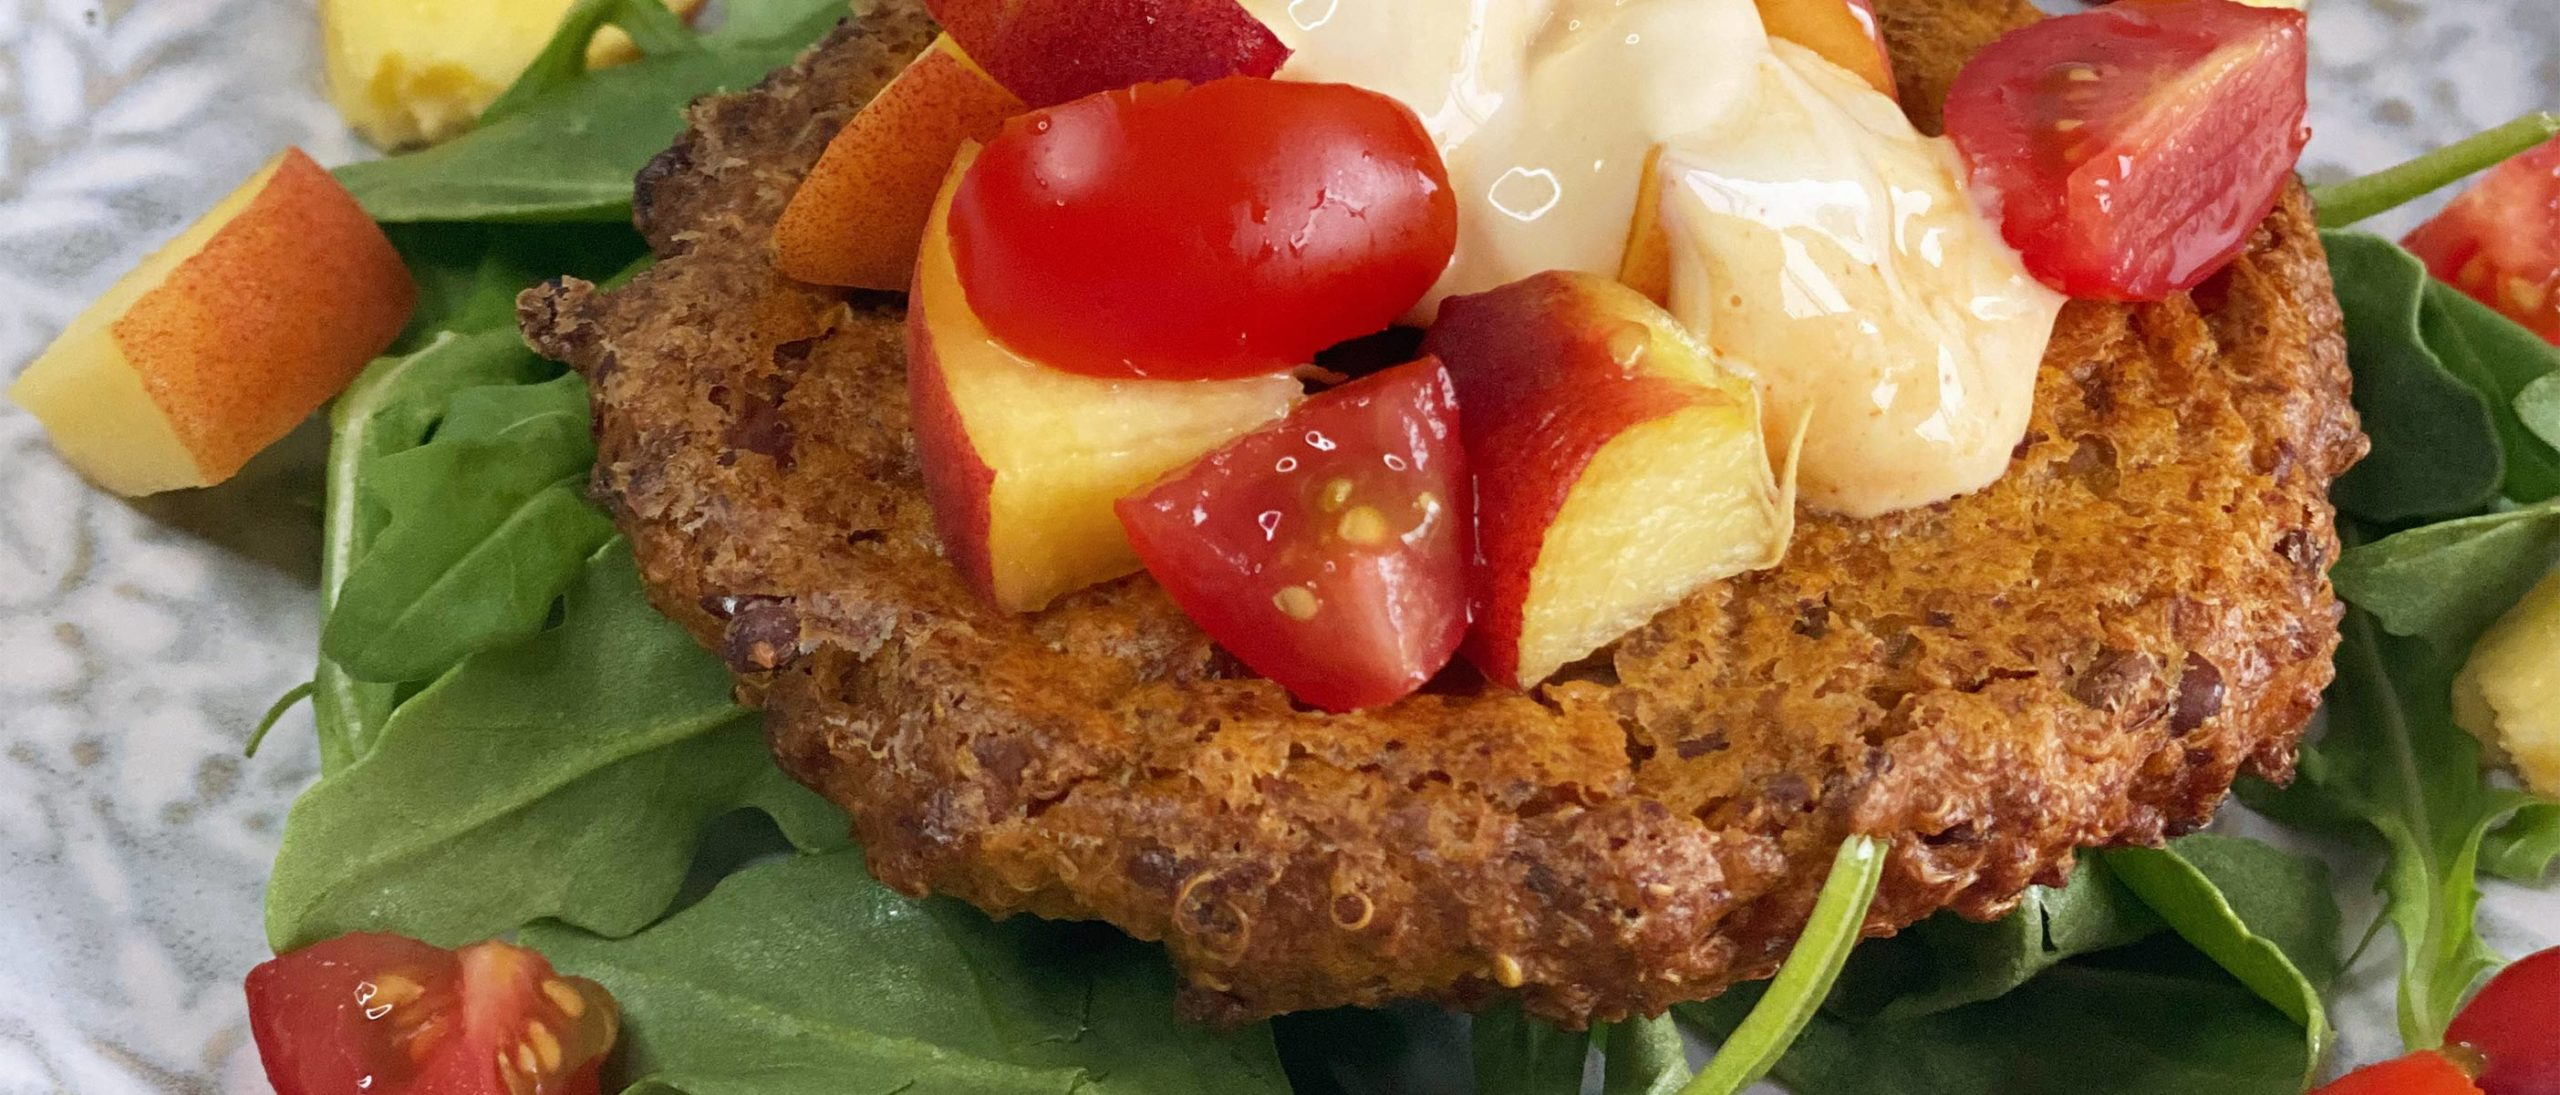 A Burget patty on a bed of lettuce and topped with peaches and cherry tomatoes